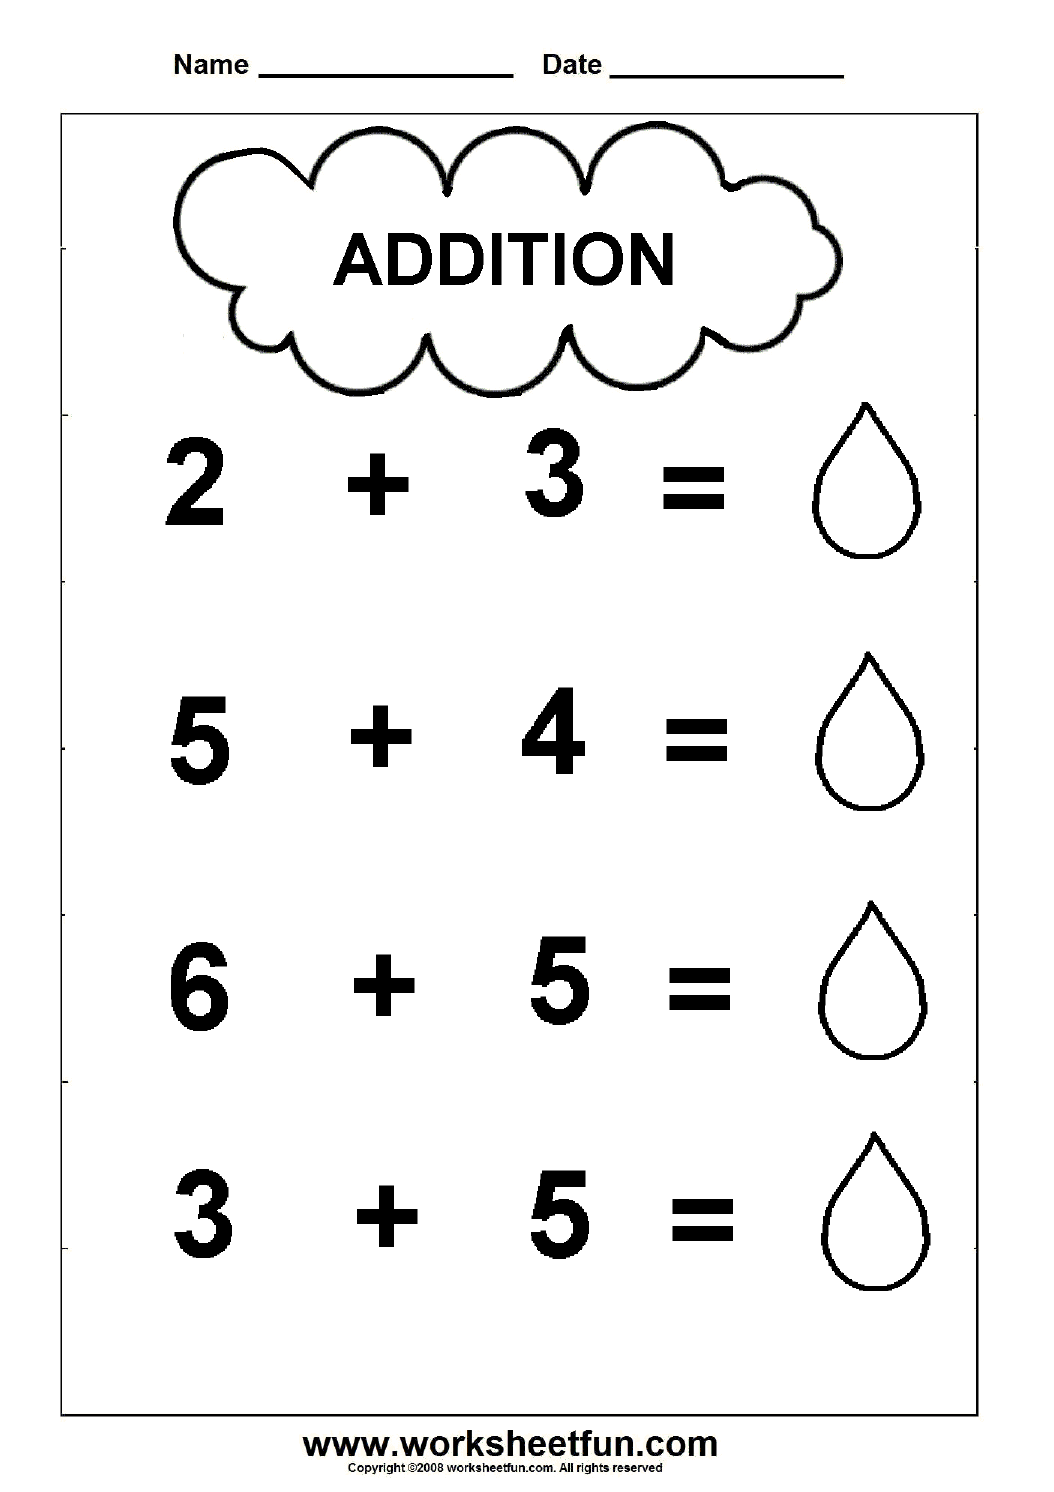 Printables Easy Addition Worksheets 1000 images about free printable worksheets on pinterest fact families letter tracing and addition worksheets